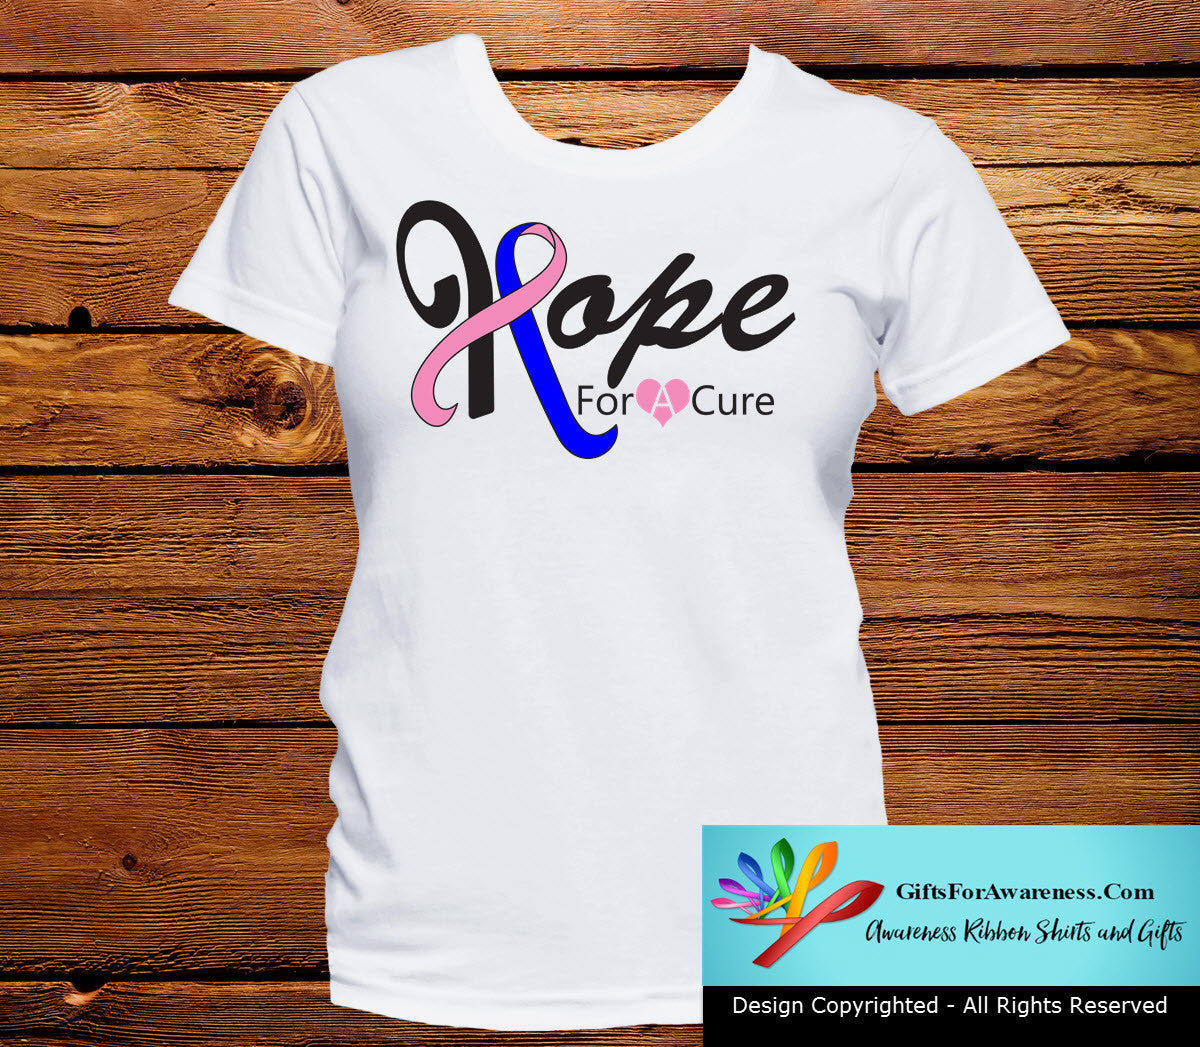 Male Breast Cancer Hope For A Cure Shirts - GiftsForAwareness